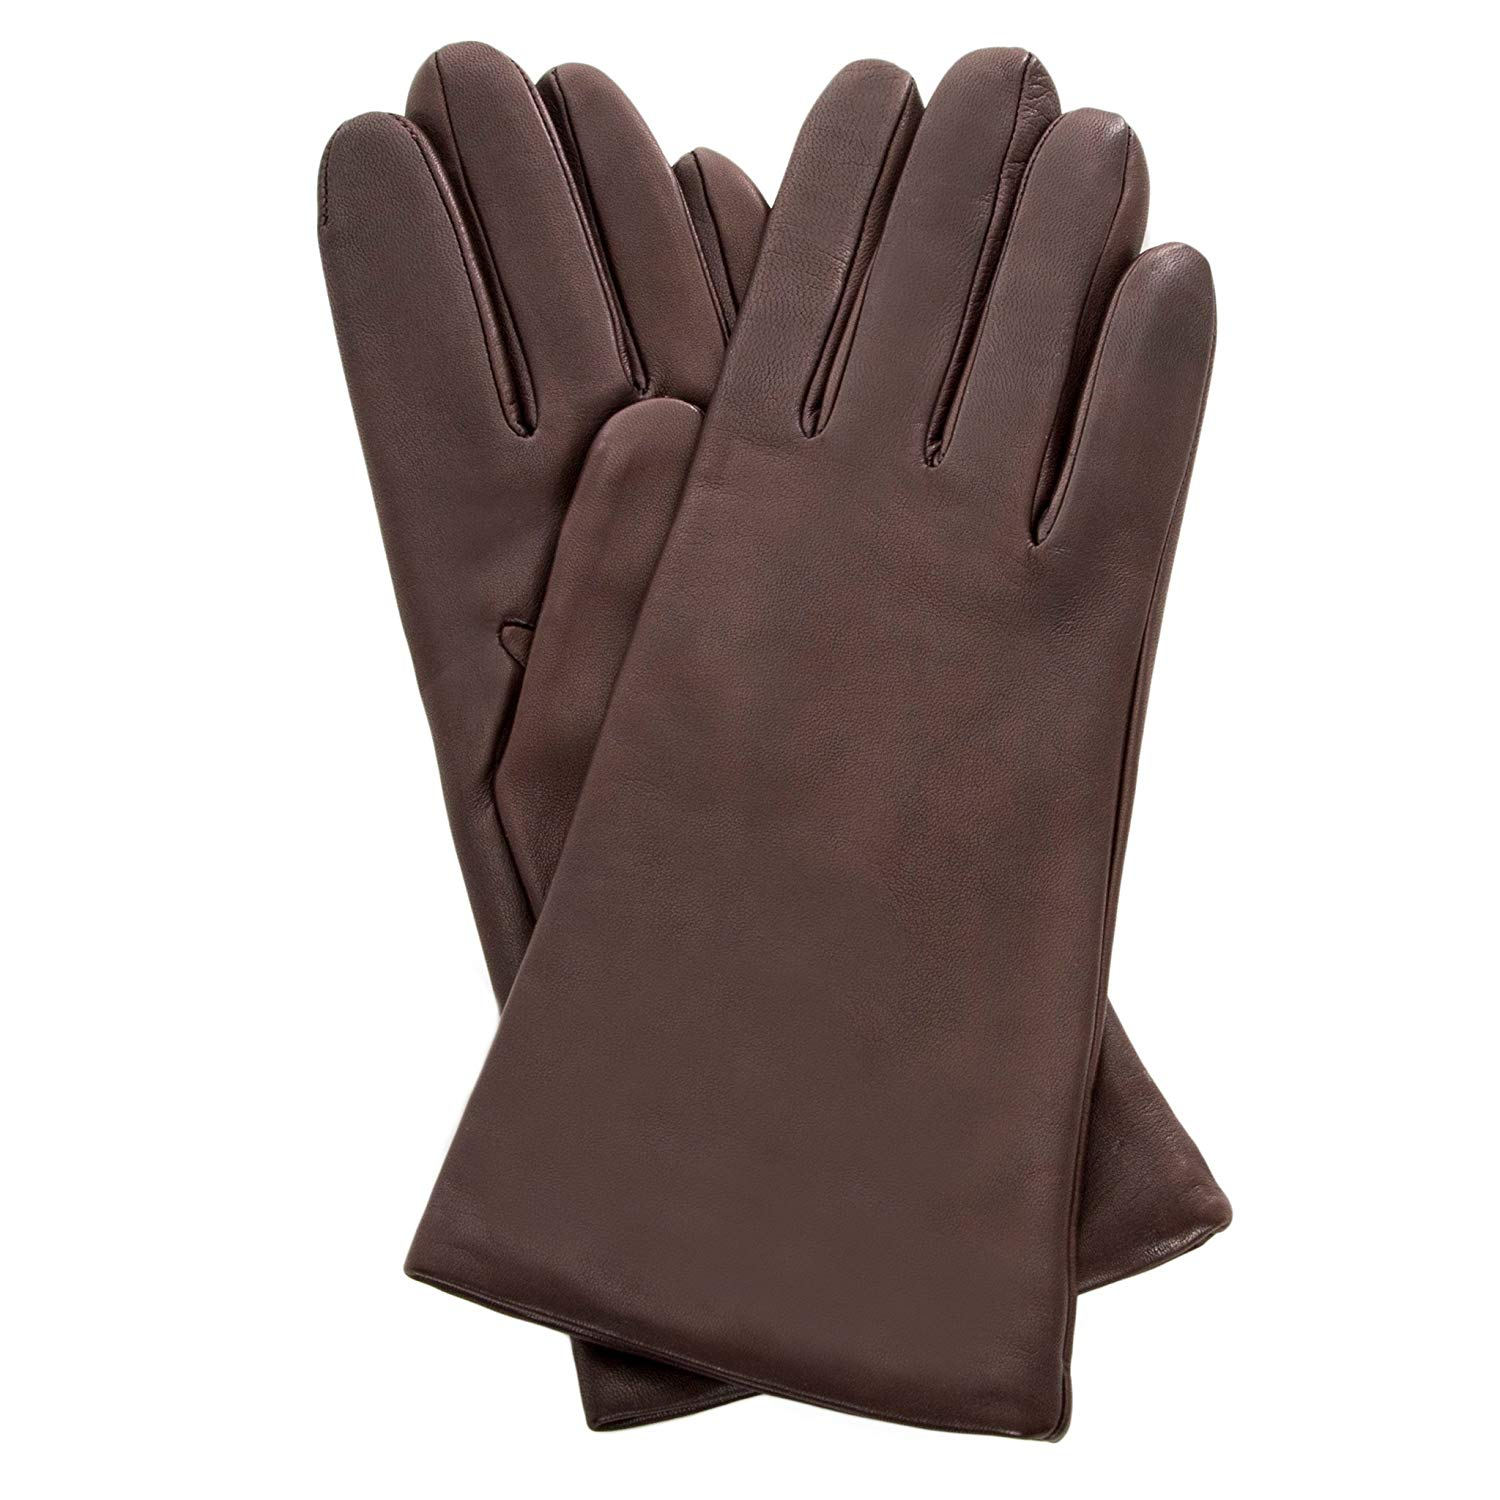 7c882f6ae5891 Cheap Cashmere Lined Gloves Women, find Cashmere Lined Gloves Women ...